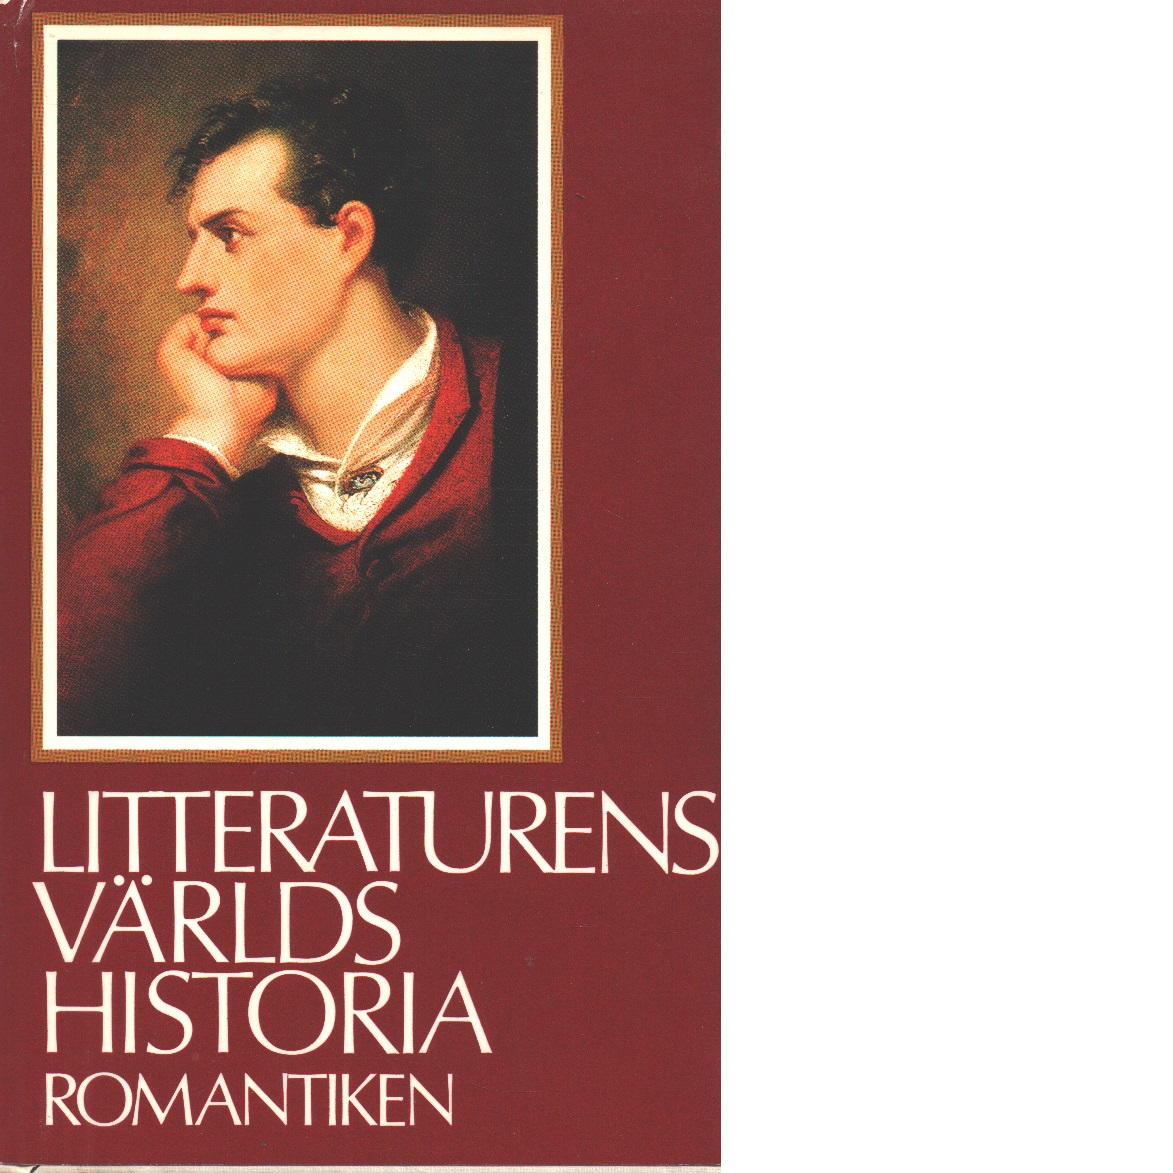 Litteraturens världshistoria. [Bd 7], Romantiken - Red.